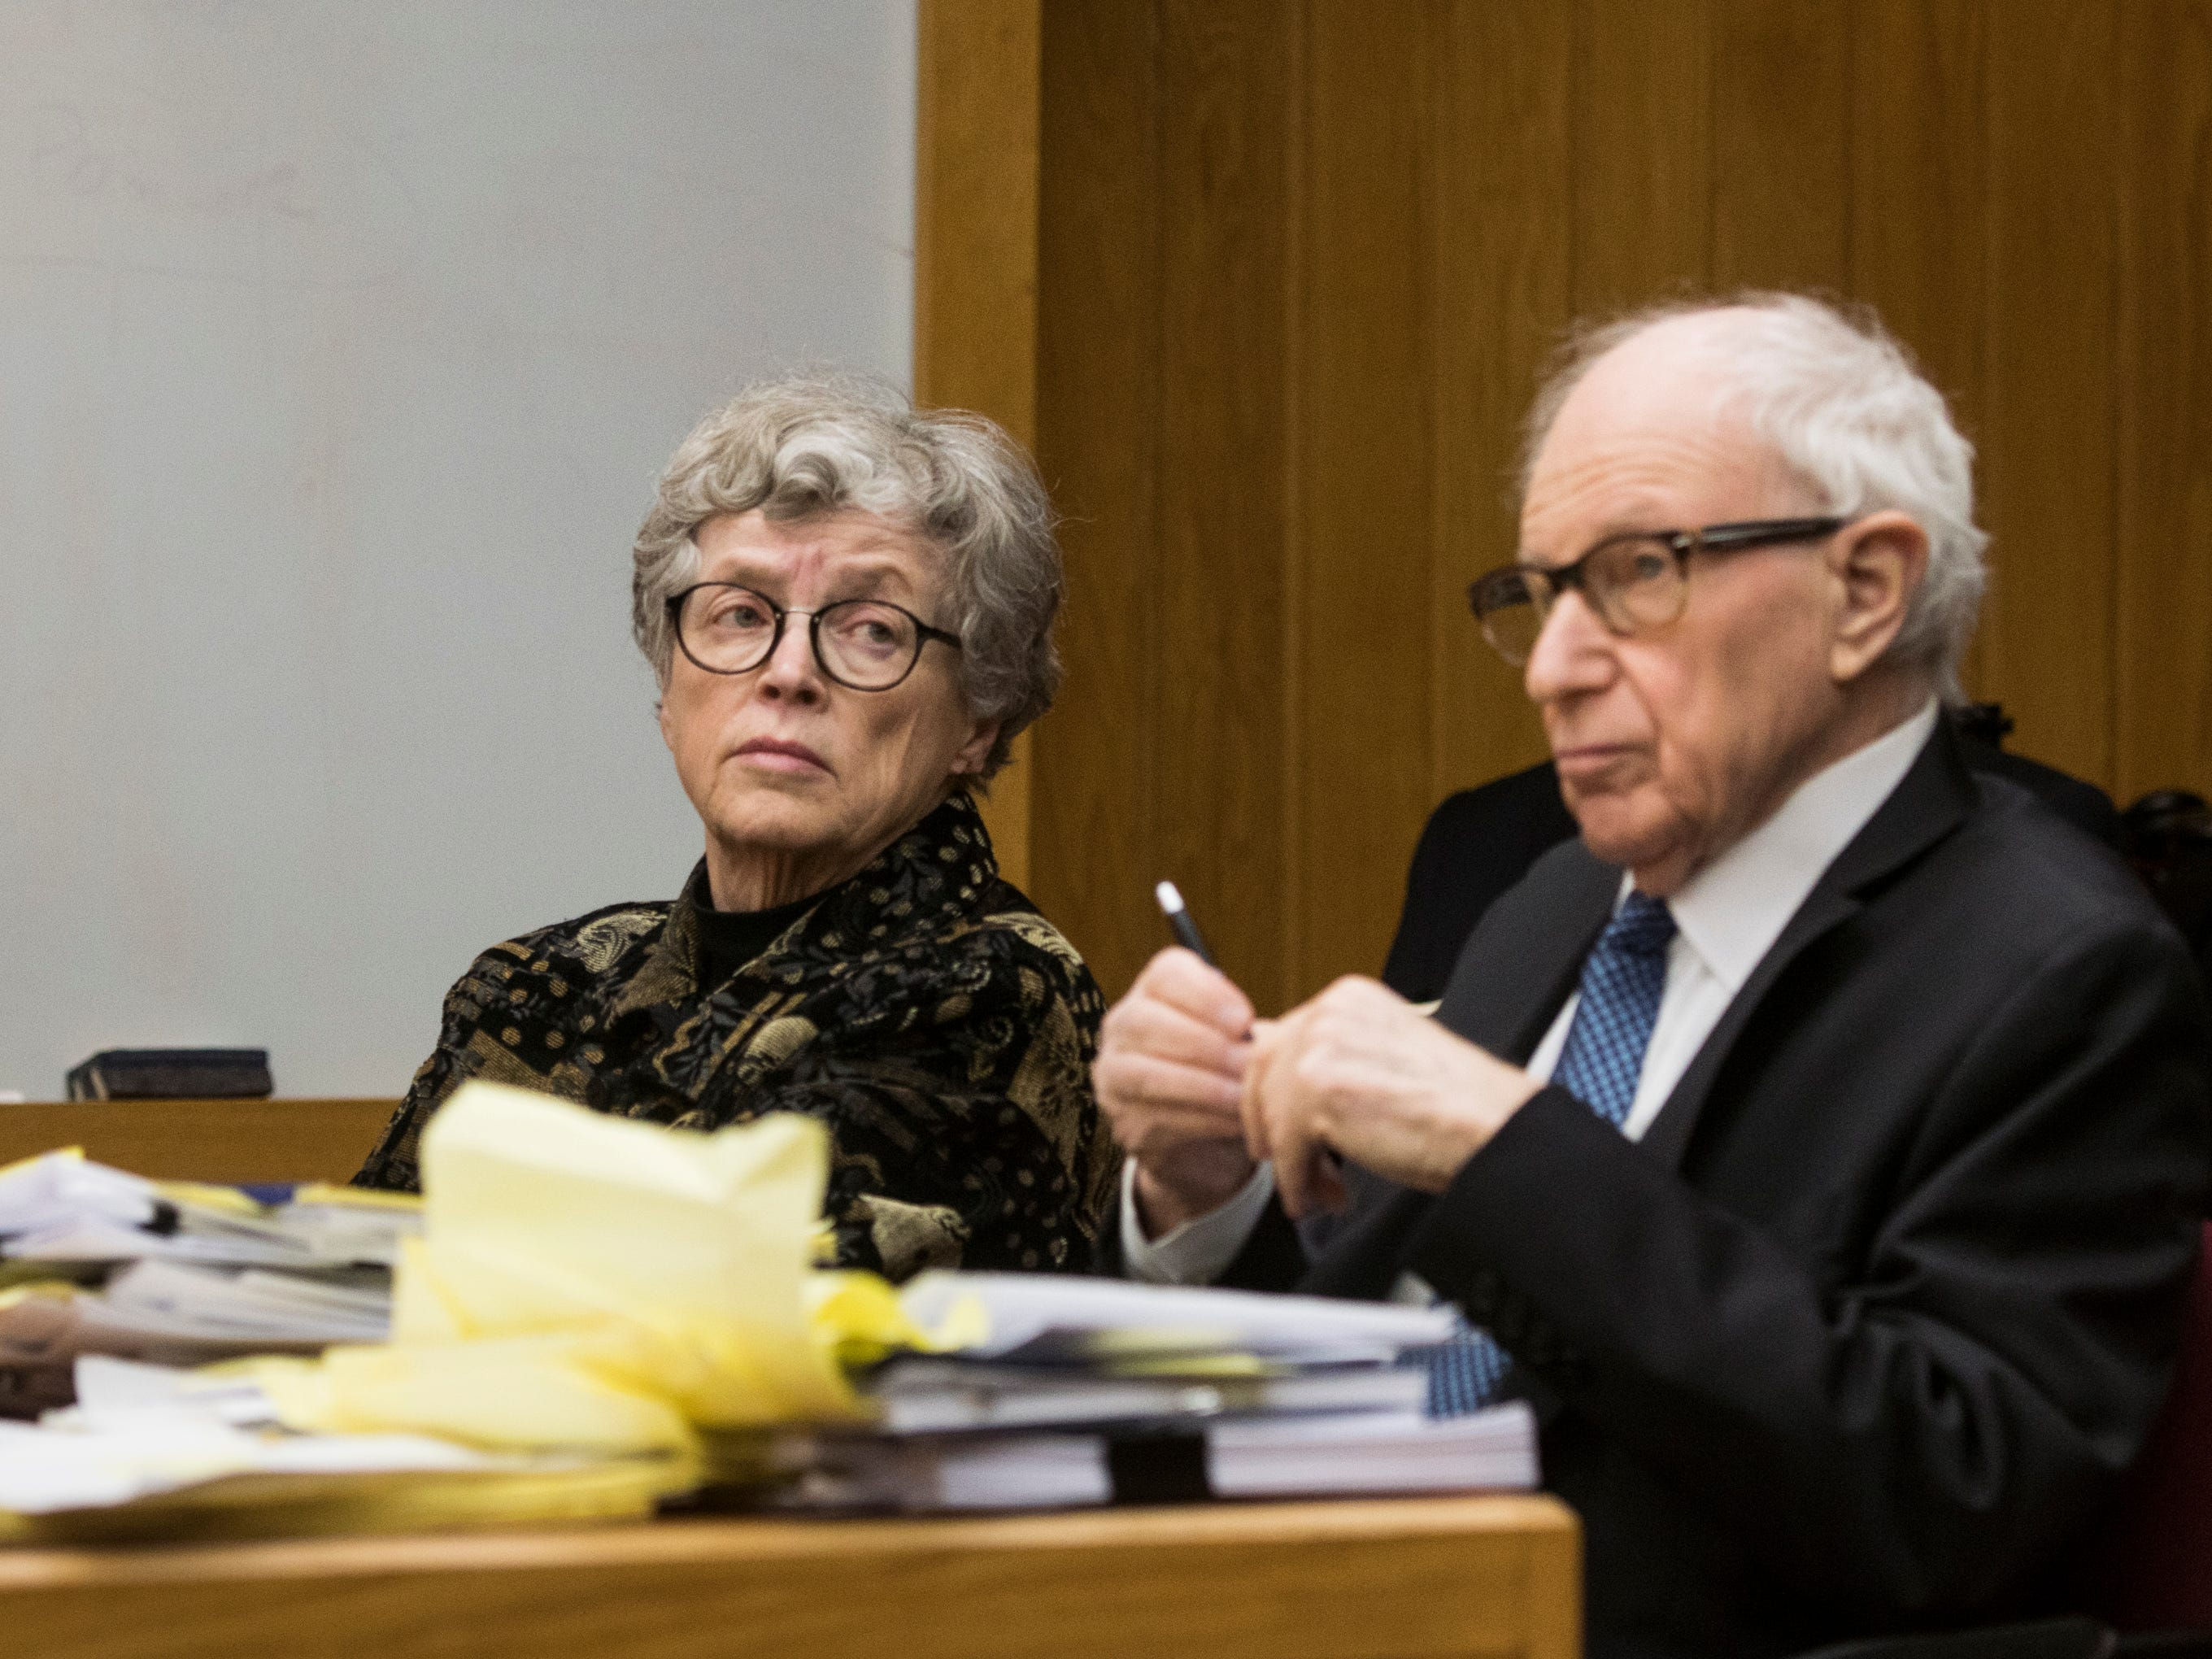 Former MSU President Lou Anna Simon appears with her attorney Mayer Morganroth in District Judge Julie Reincke's courtroom, Tuesday, Feb. 5, 2019, in Charlotte, Michigan for the first day of her preliminary hearing.  Simon faces four charges, including two felonies, because investigators say she lied to police about when she knew about a sexual assault report against former MSU doctor Larry Nassar.  